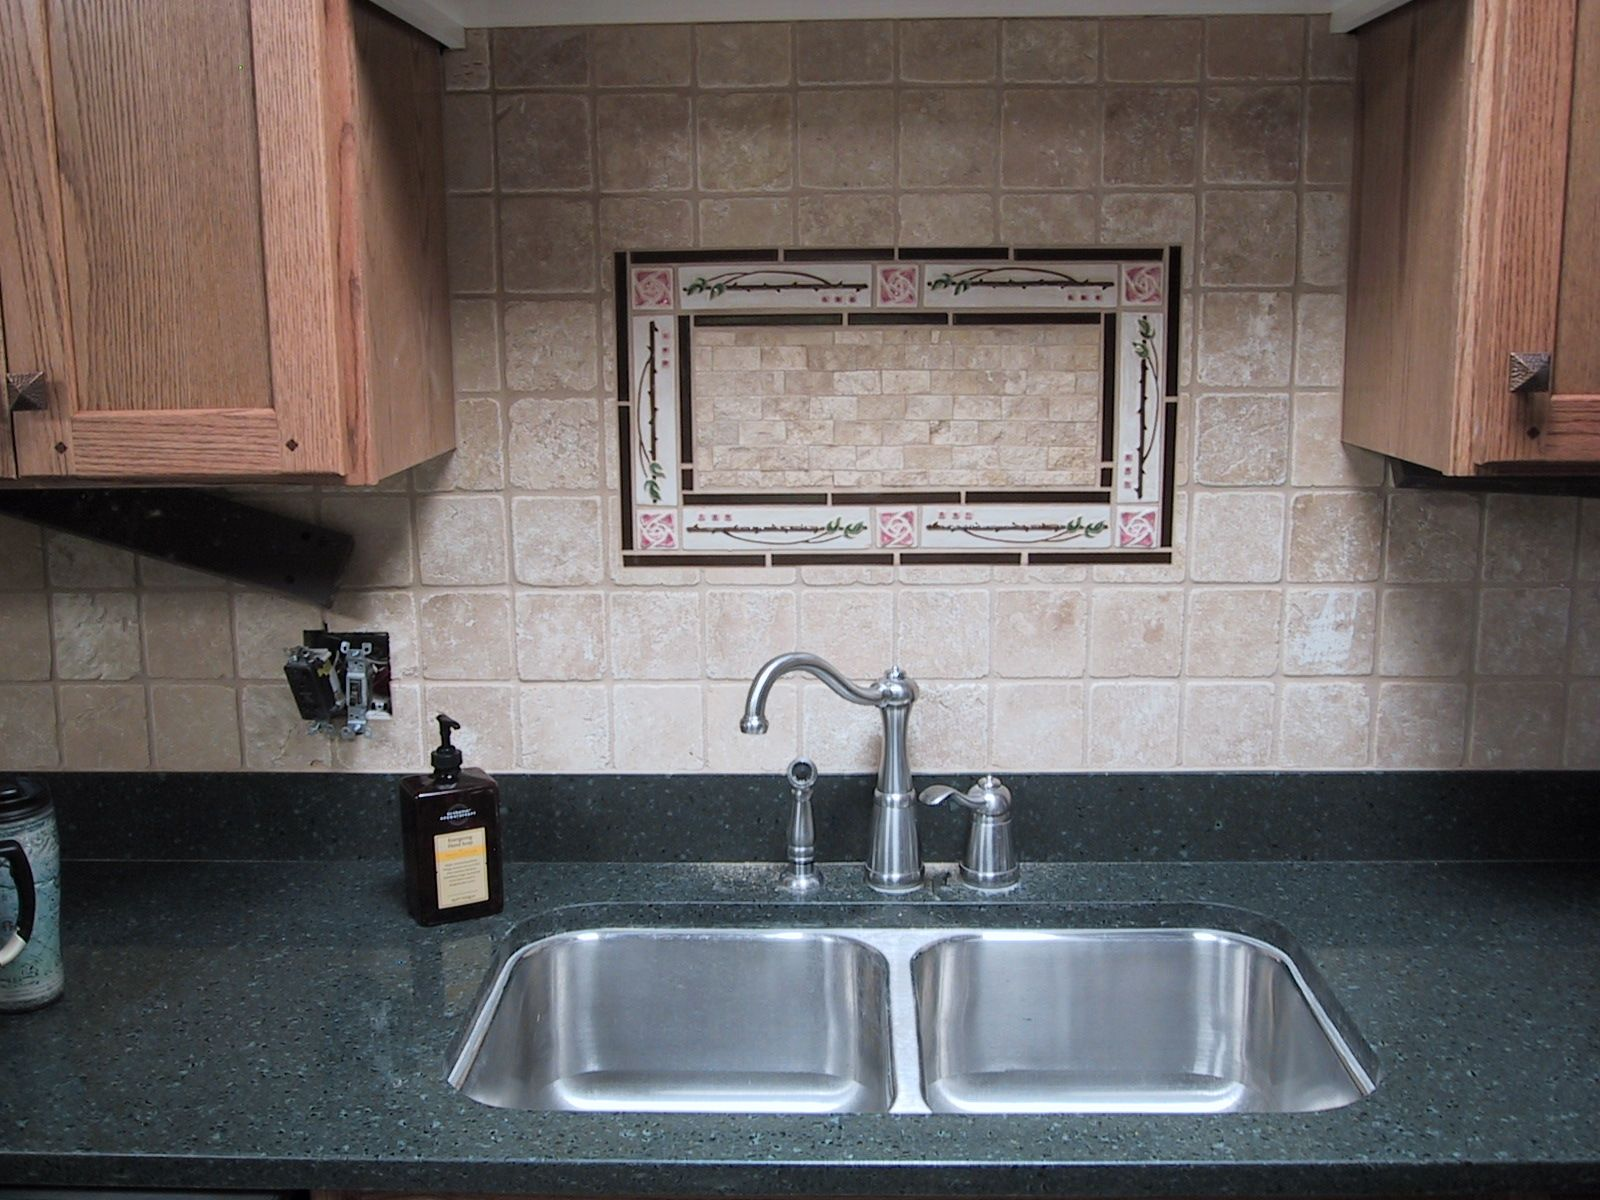 Backsplash ideas kitchen sink backsplash ideas ehow for Sink splashback ideas